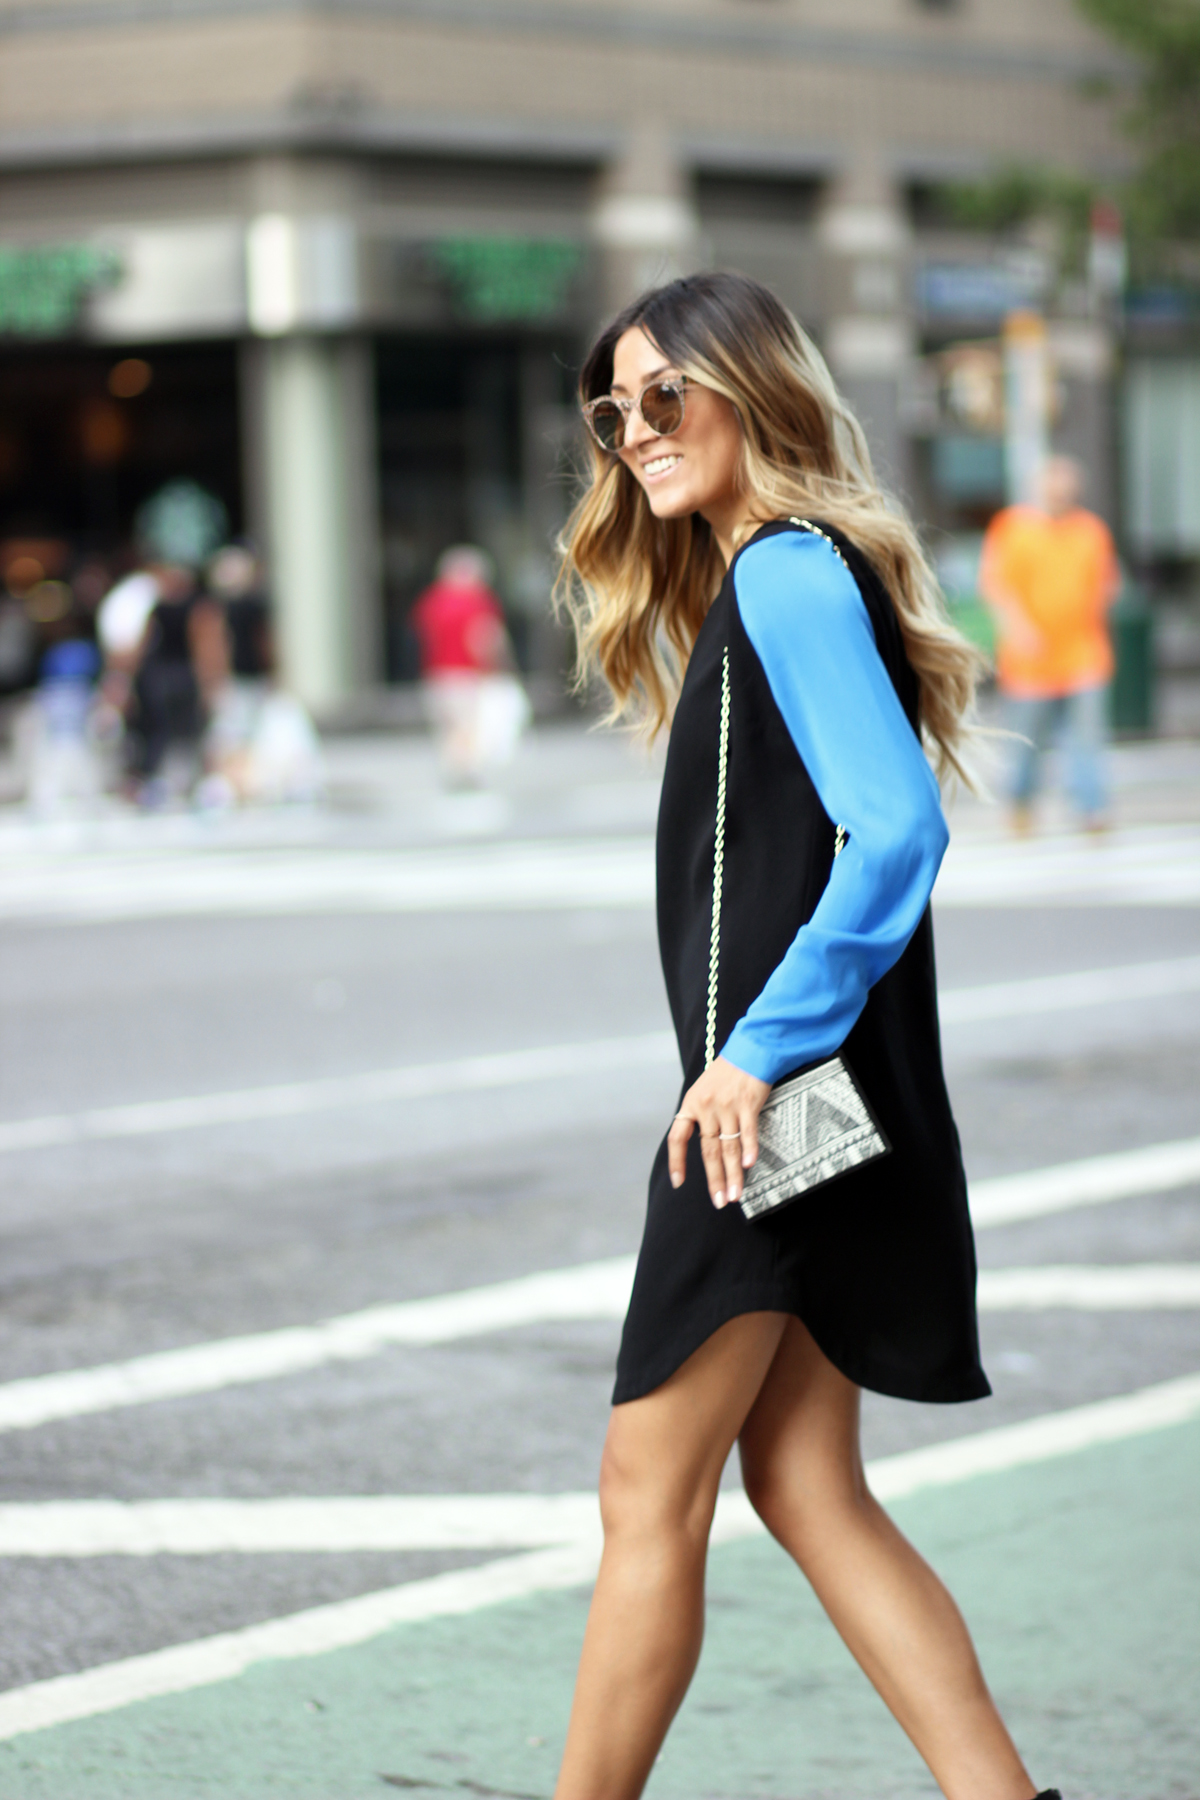 LBD, NYC, New York, NYFW, MBFW, Streetstyle, Melrodstyle, Fashion Week, Quay Australia, ShopPrimaDonna